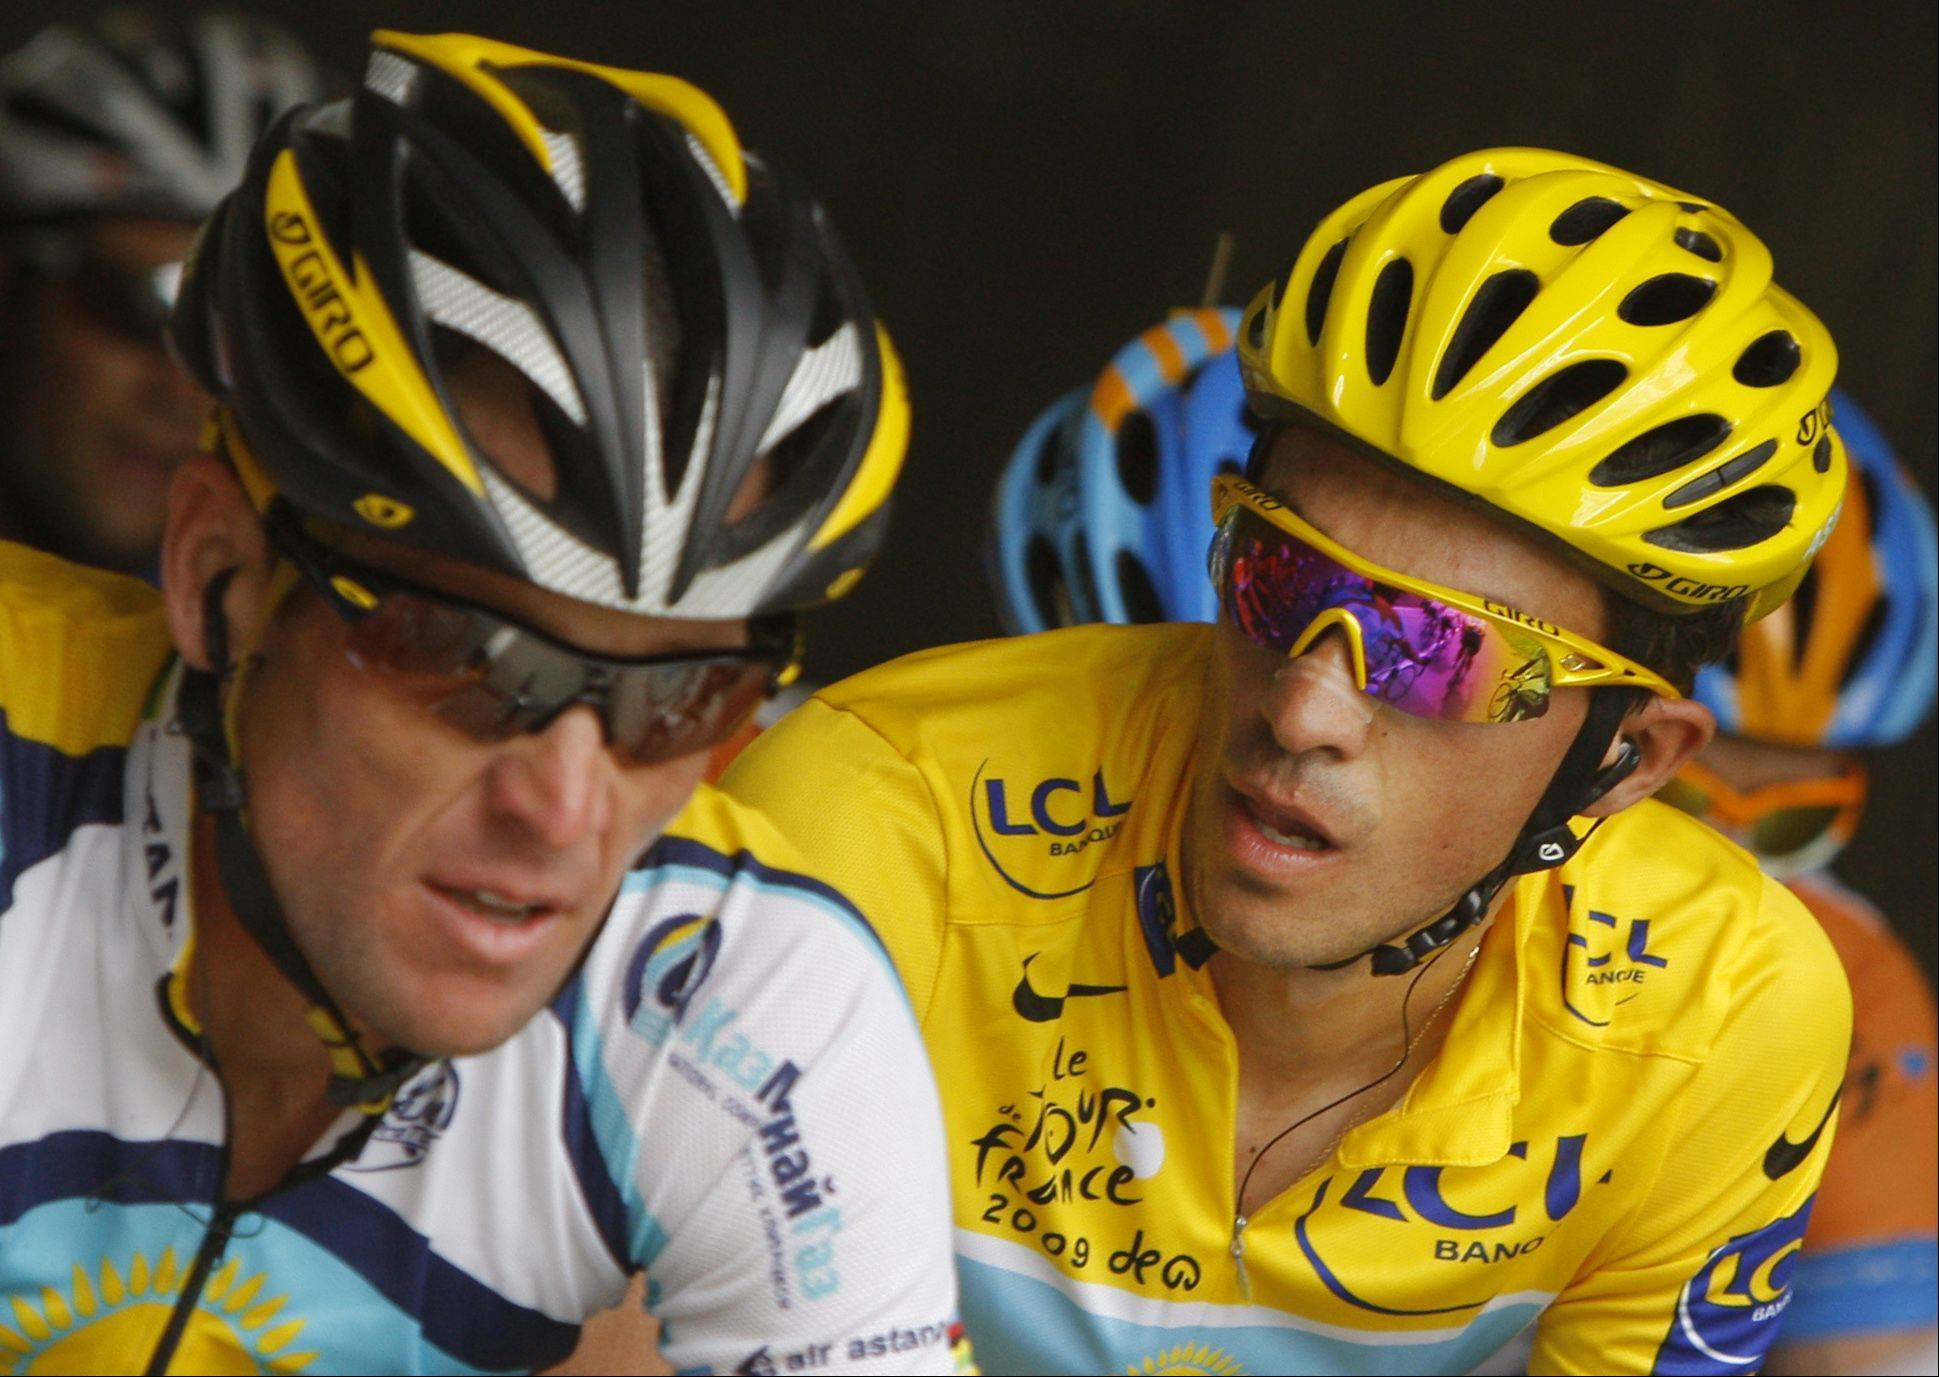 Alberto Contador of Spain, wearing the overall leader's yellow jersey, right, looks at American seven-time Tour de France winner Lance Armstrong, as they climb Grand-Saint-Bernard pass during the 16th stage of the Tour de France cycling race over 159 kilometers (98.8 miles) with start in Martigny, Switzerland and finish in Bourg-Saint-Maurice, Alps region, France, Tuesday July 21, 2009.